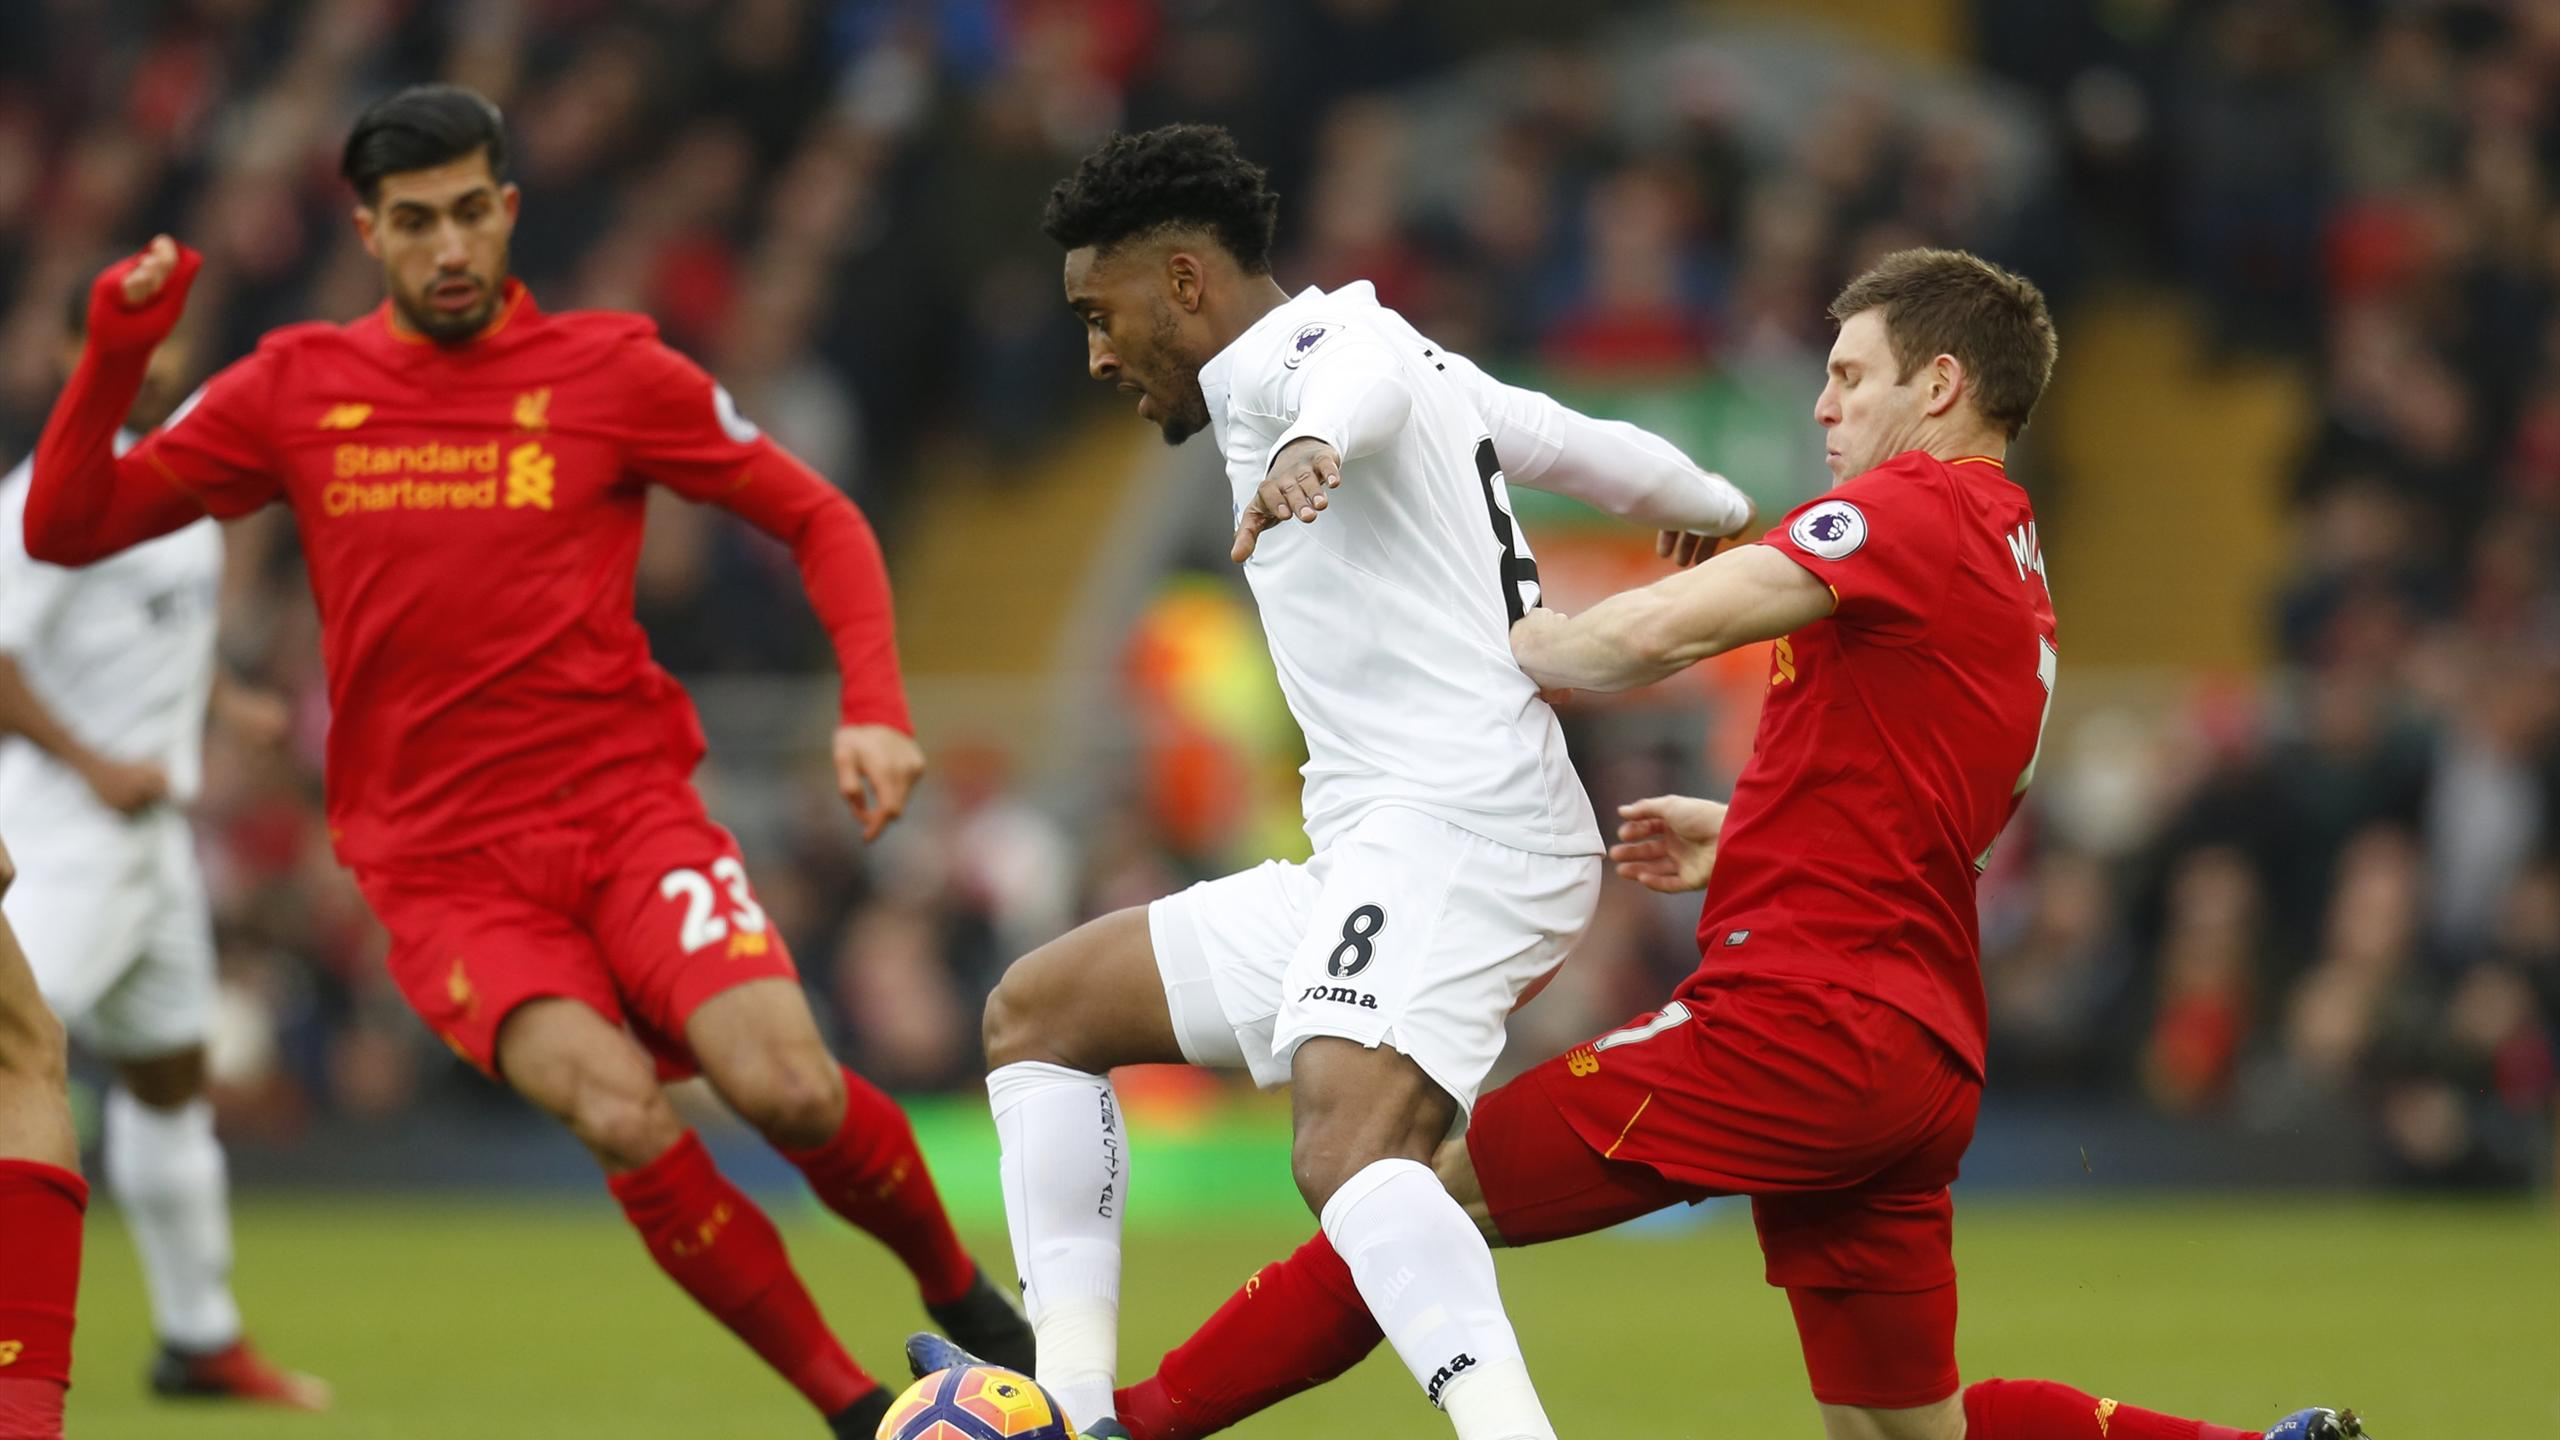 Swansea City's Leroy Fer in action with Liverpool's James Milner